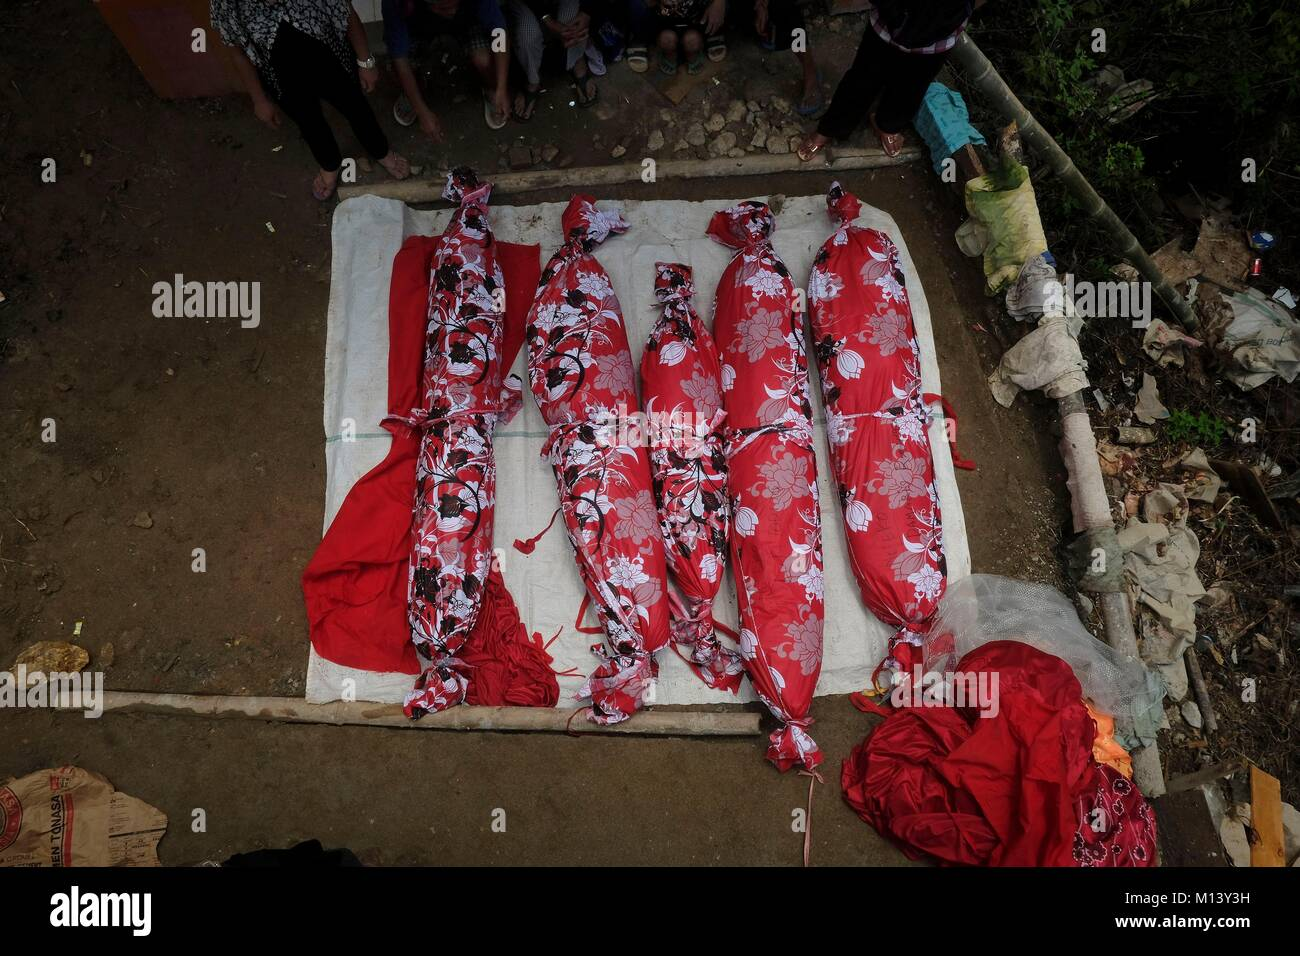 Indonesia, Sulawesi island, Toraja land, during the Ma'Nene ceremony, mummified bodies are cleaned, dried in the - Stock Image